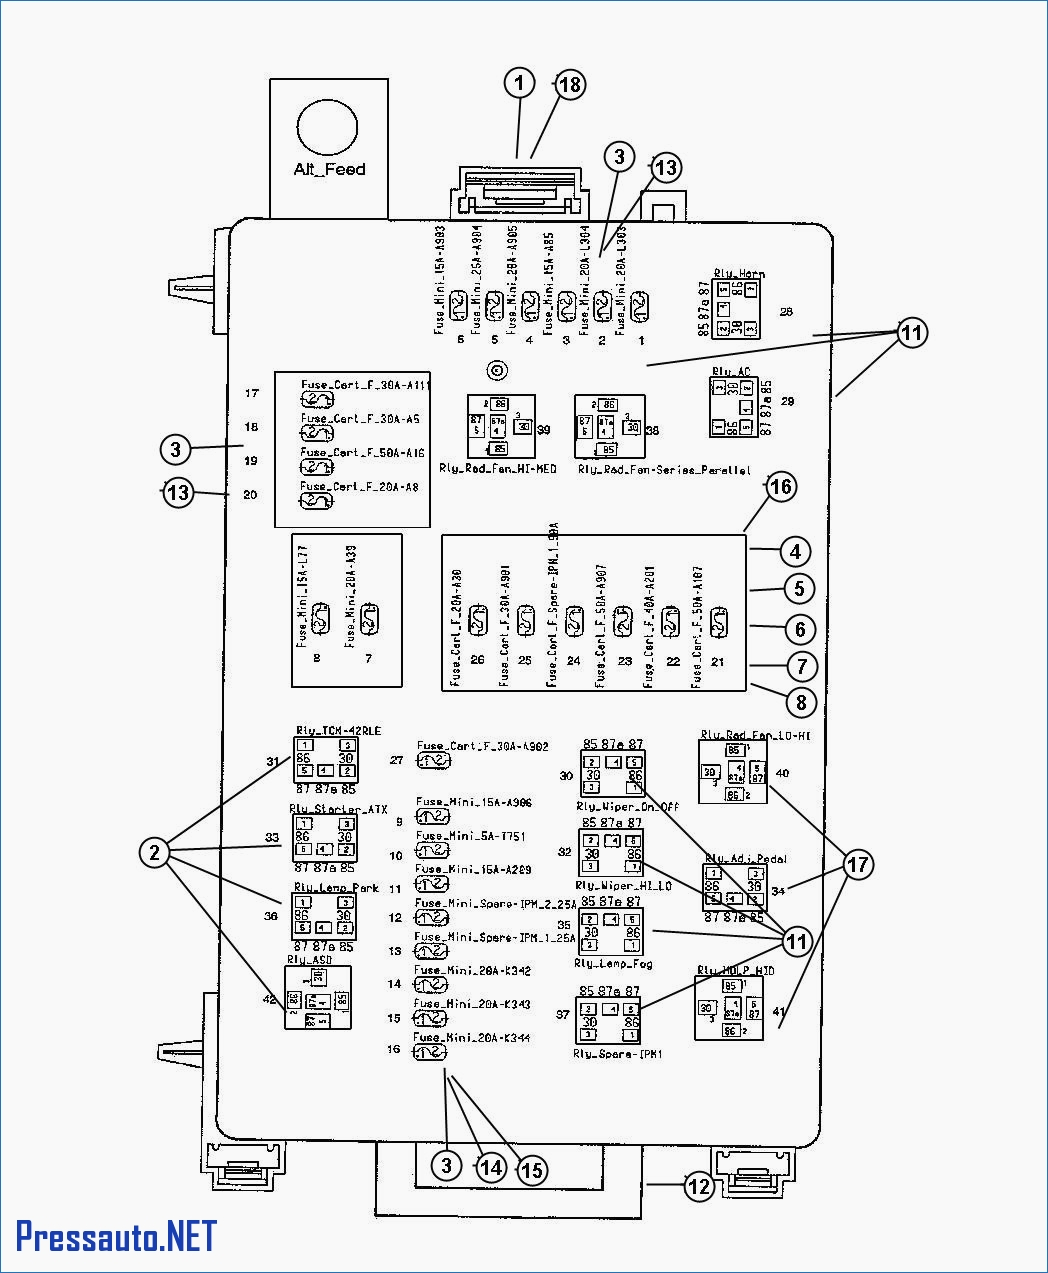 1969 Dodge Charger Drawing At Free For Personal Fuse Box Diagram 1048x1273 Divine Design Chrysler Fuel Pump Wiring